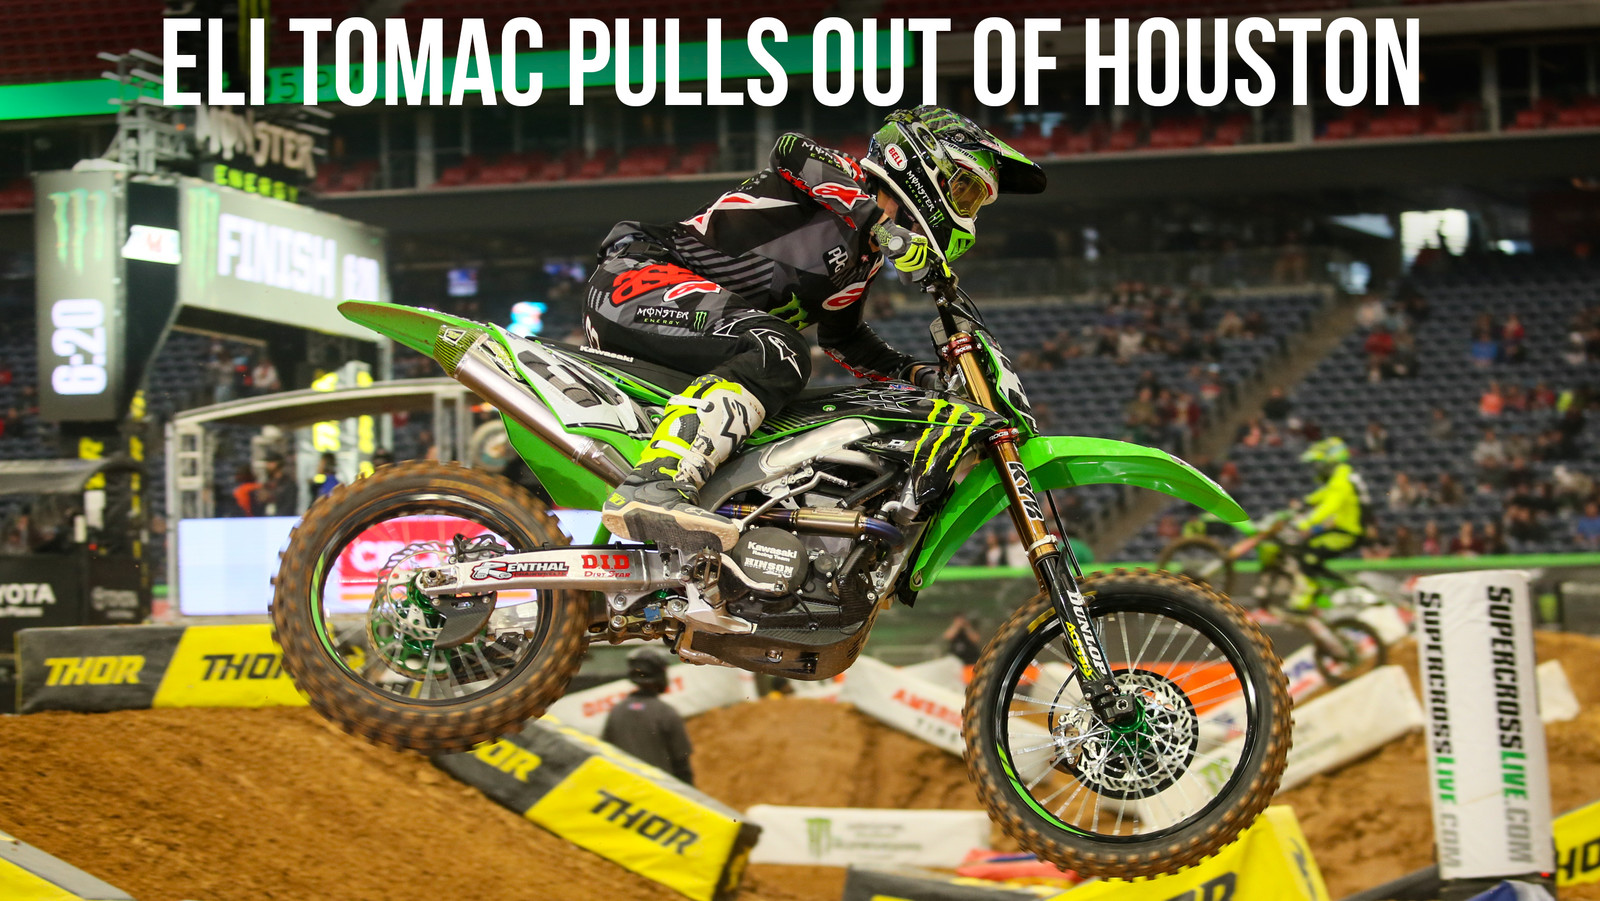 Injury Report: Eli Tomac Pulls out of Houston - Will Not Race